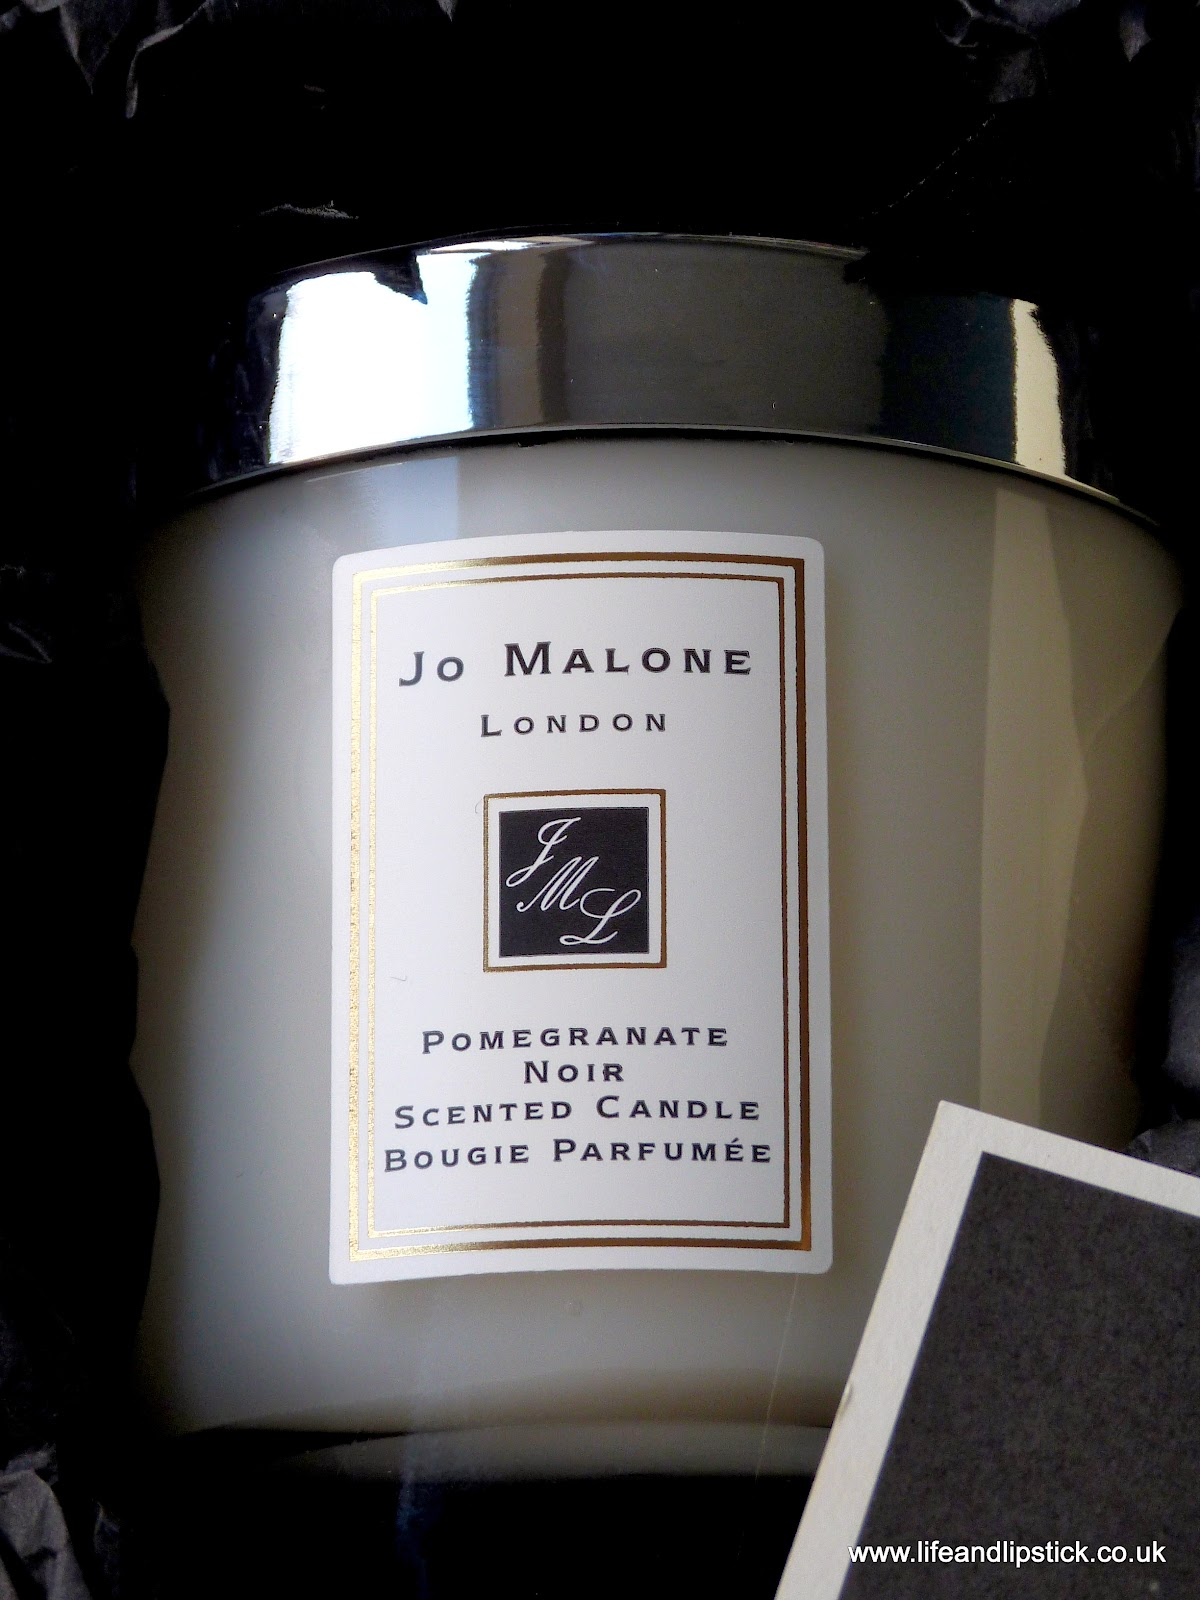 Life And Lipstick Jo Malone London Pomegranate Noir Scented Candle